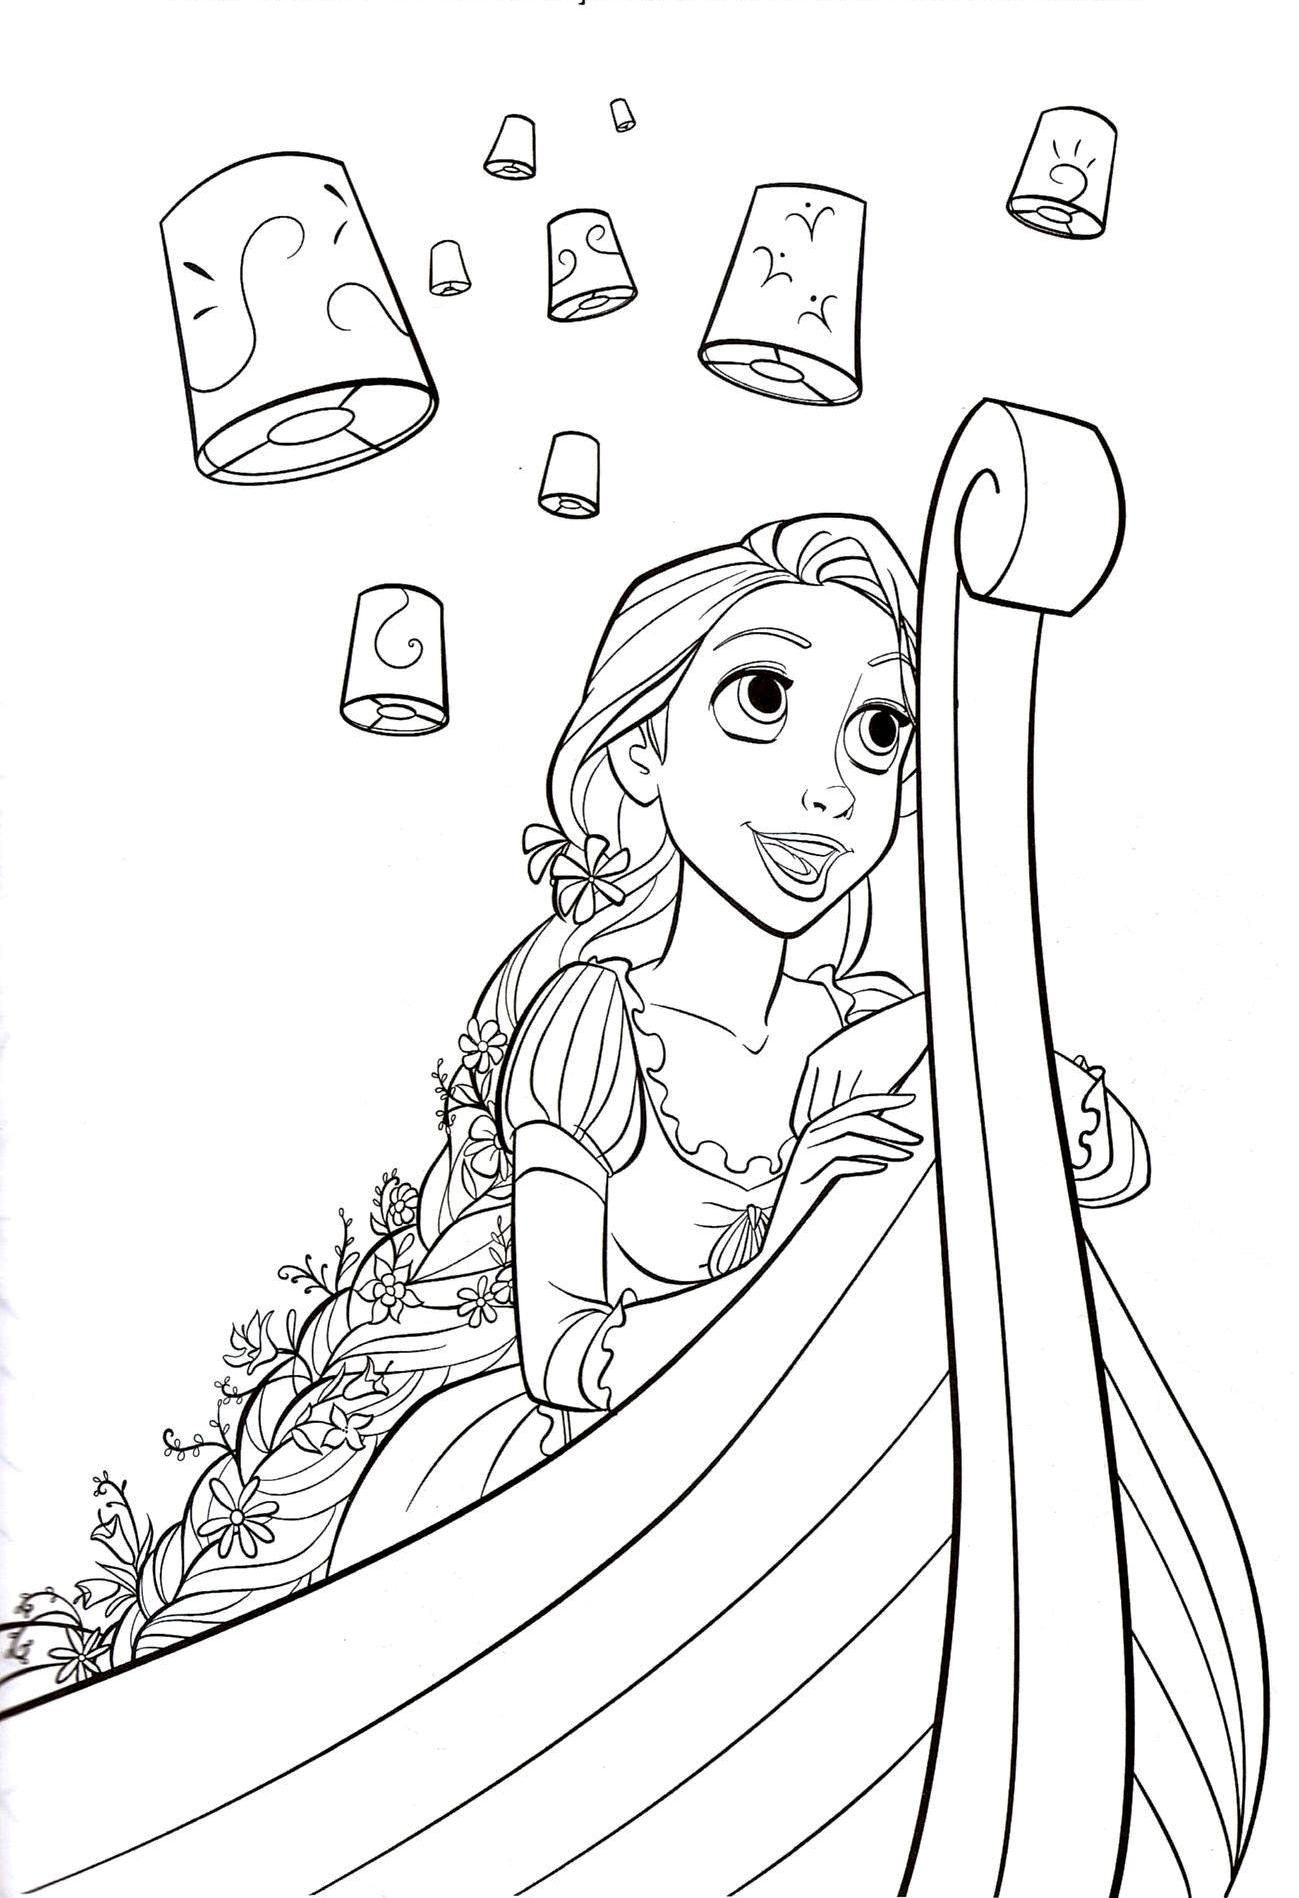 Disney Rapunzel Coloring Pages Free Printable Disney Princess - Free Printable Tangled